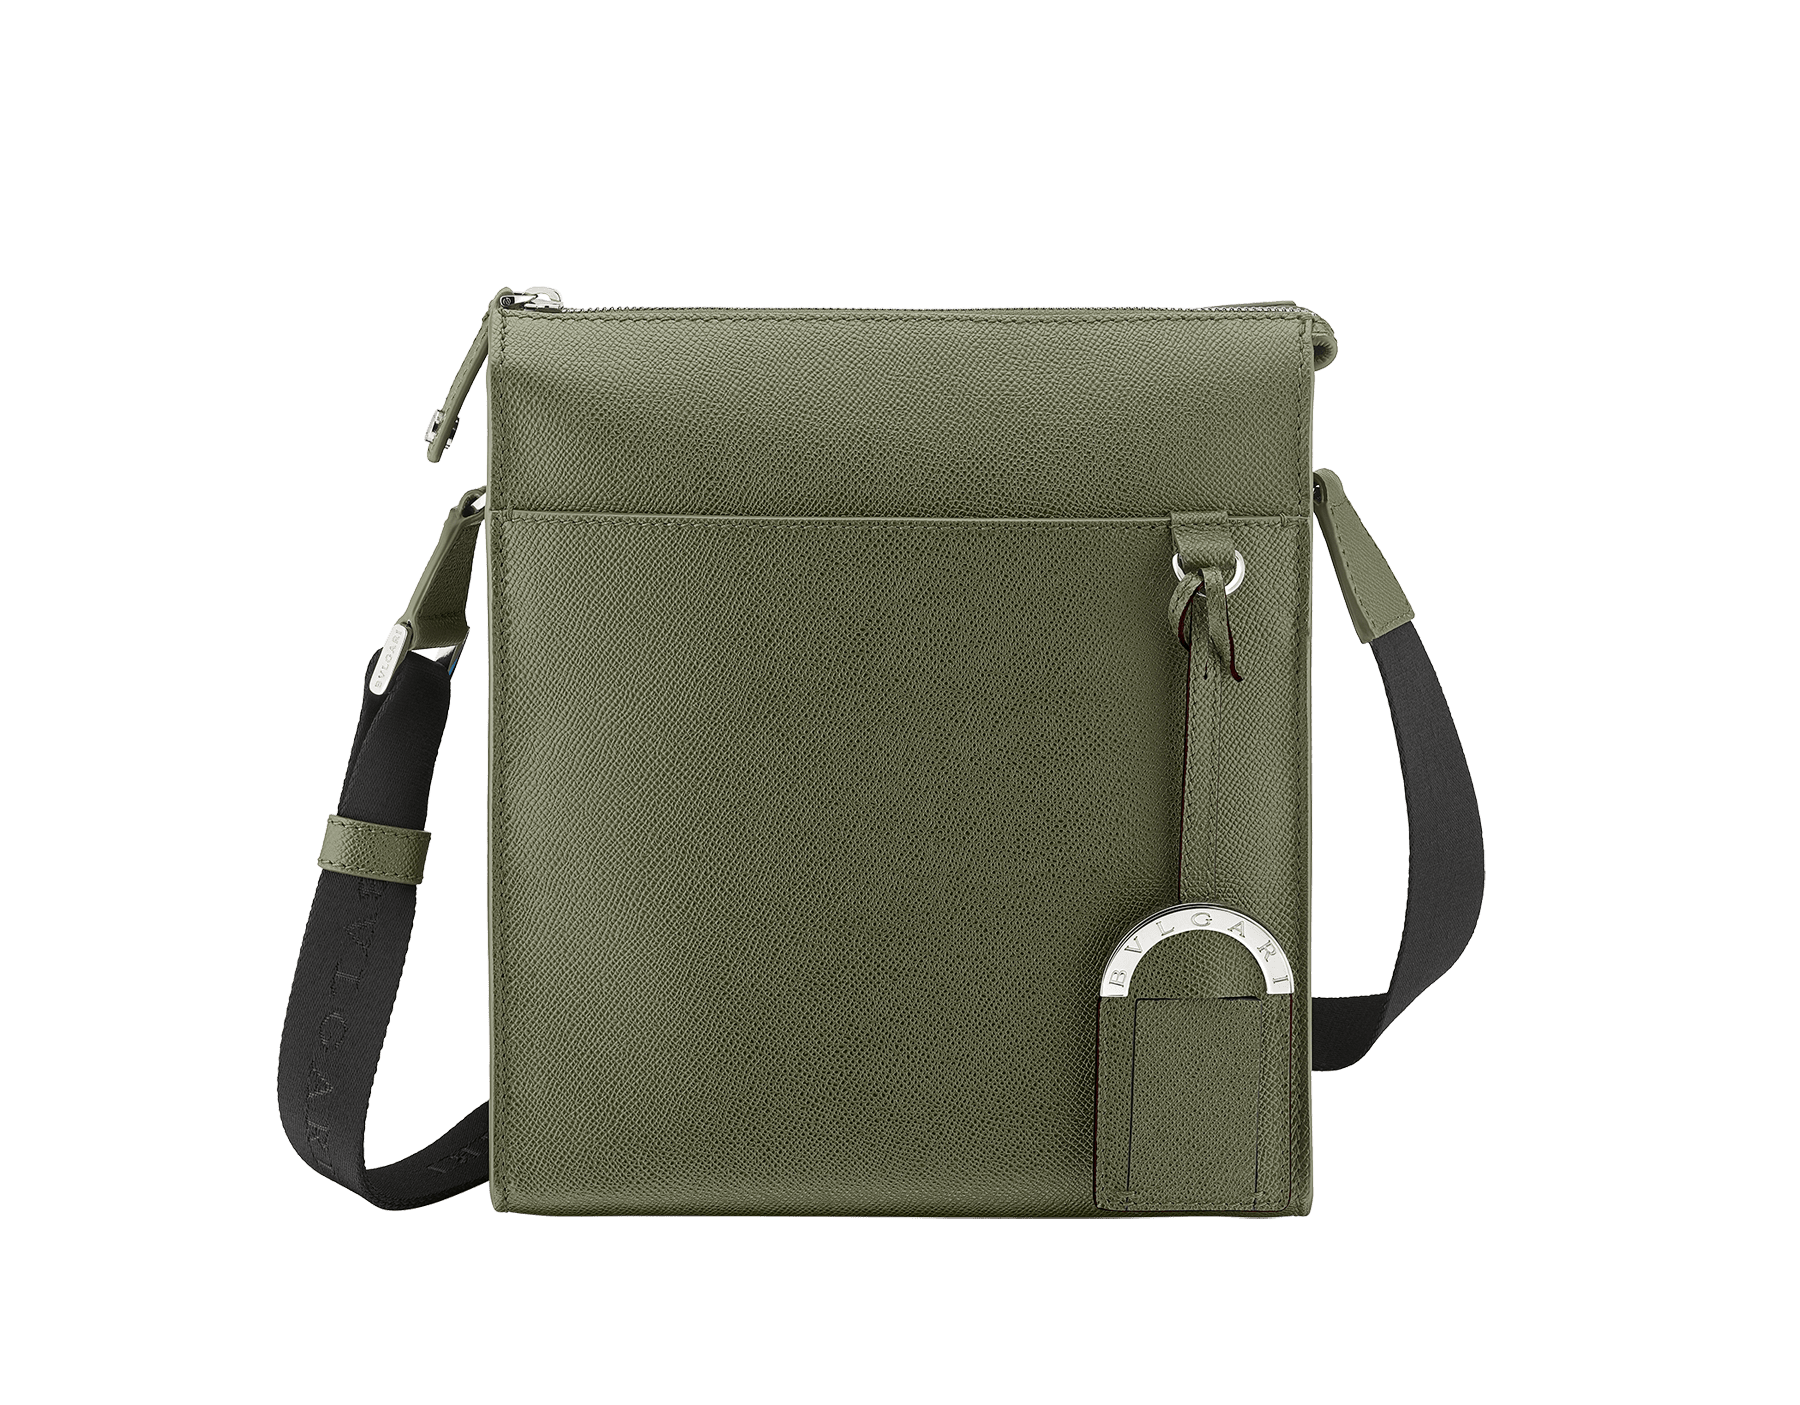 """BVLGARI BVLGARI"" zip-top messenger bag in mimetic jade grain calf leather with brass palladium plated hardware. BBM-001-0624S image 1"